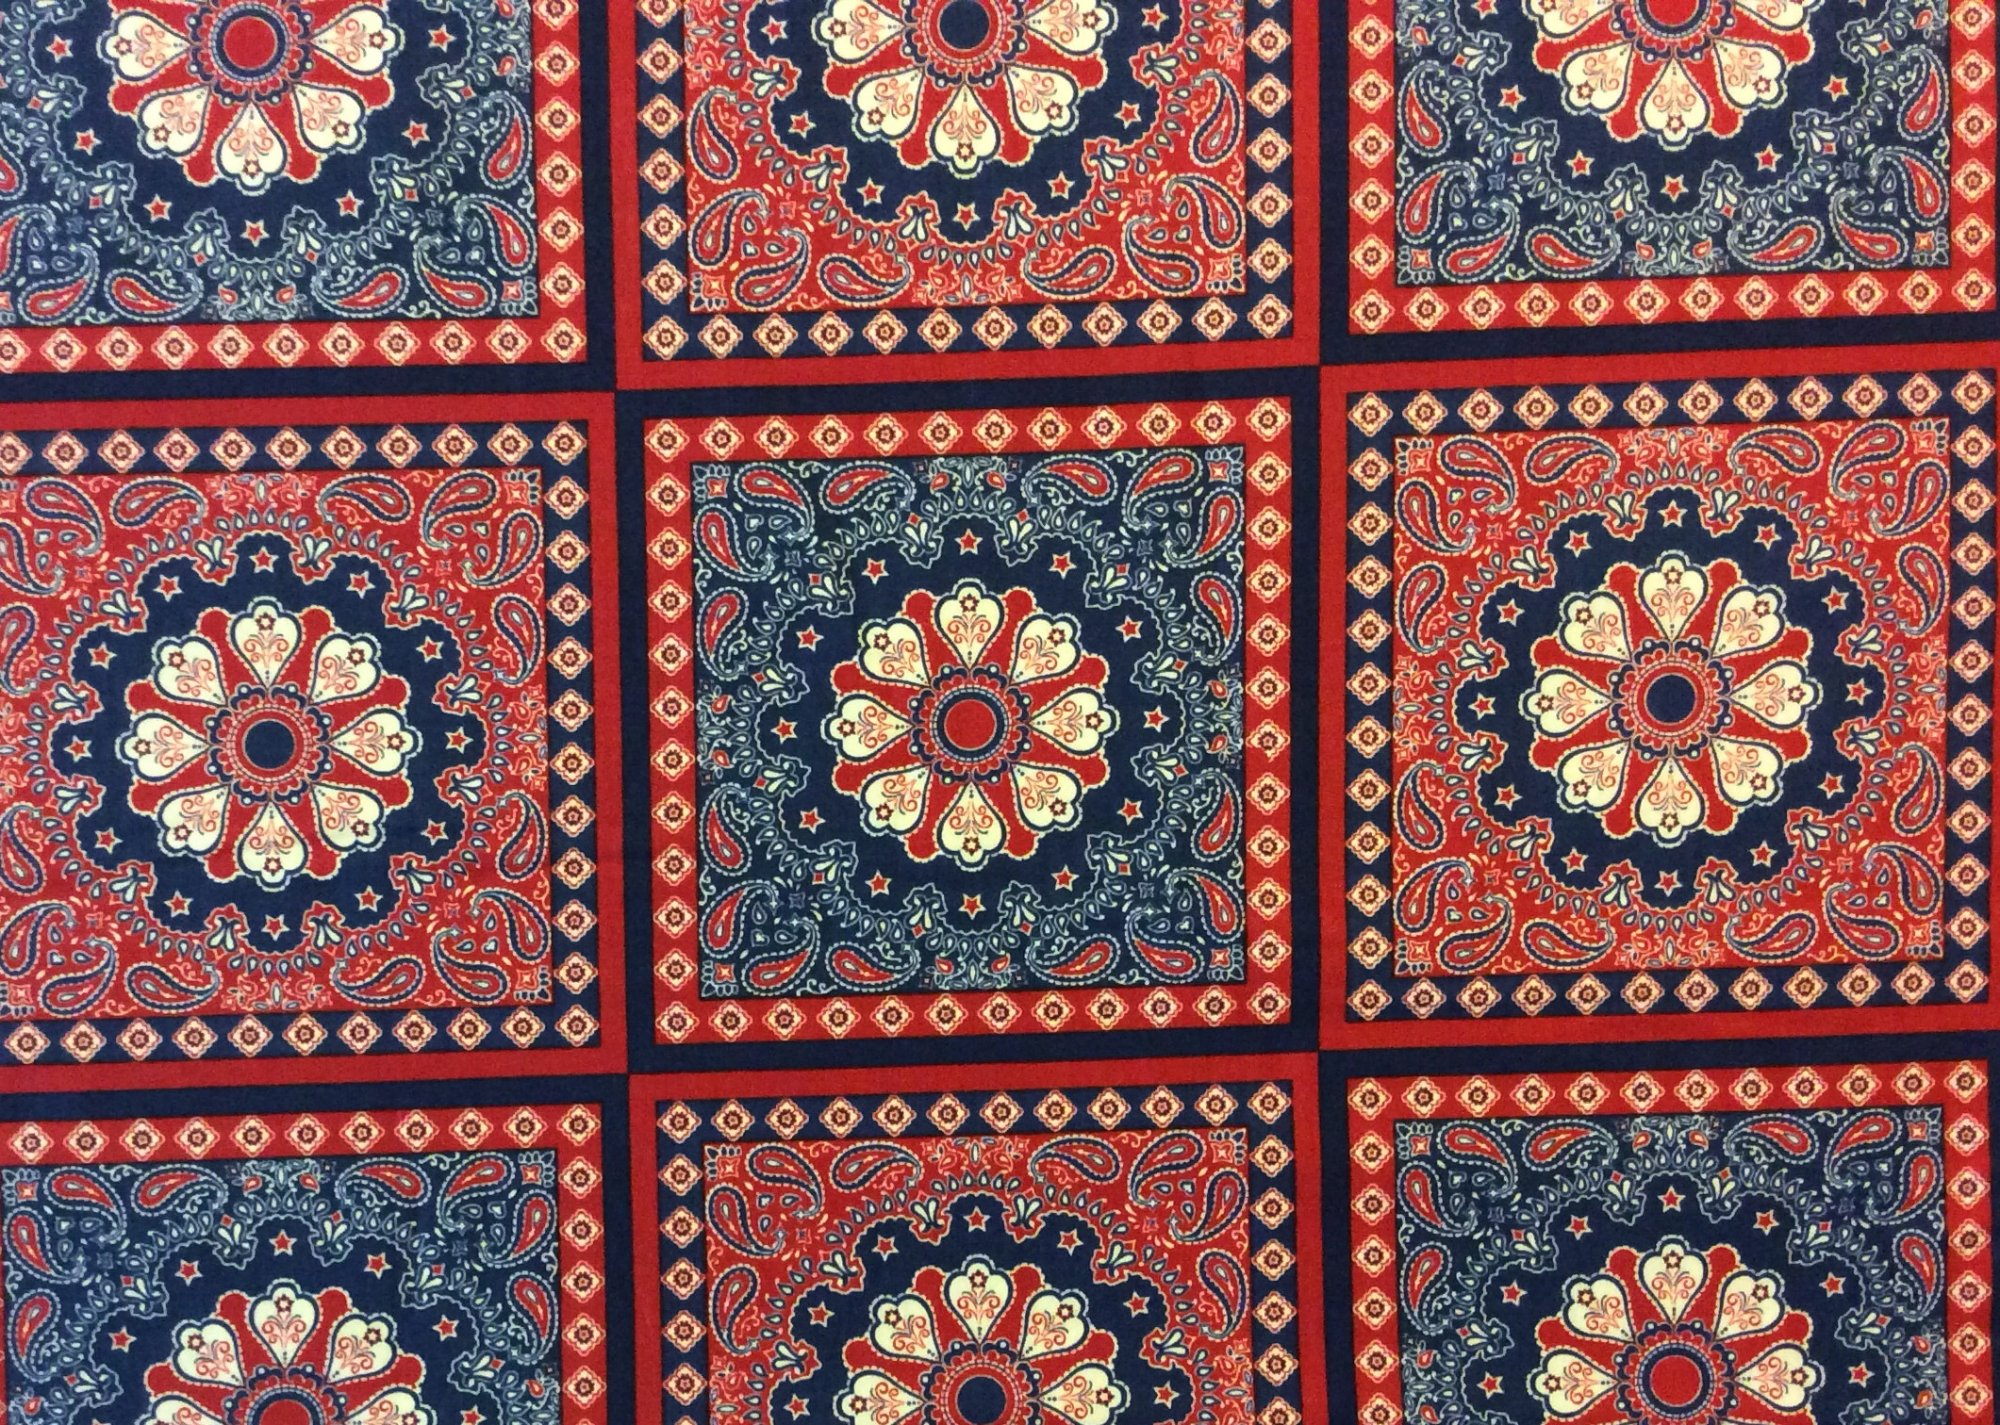 Persian Rug Panel Paisley Bandana Red White Blue Cotton Quilting Fabric MD232